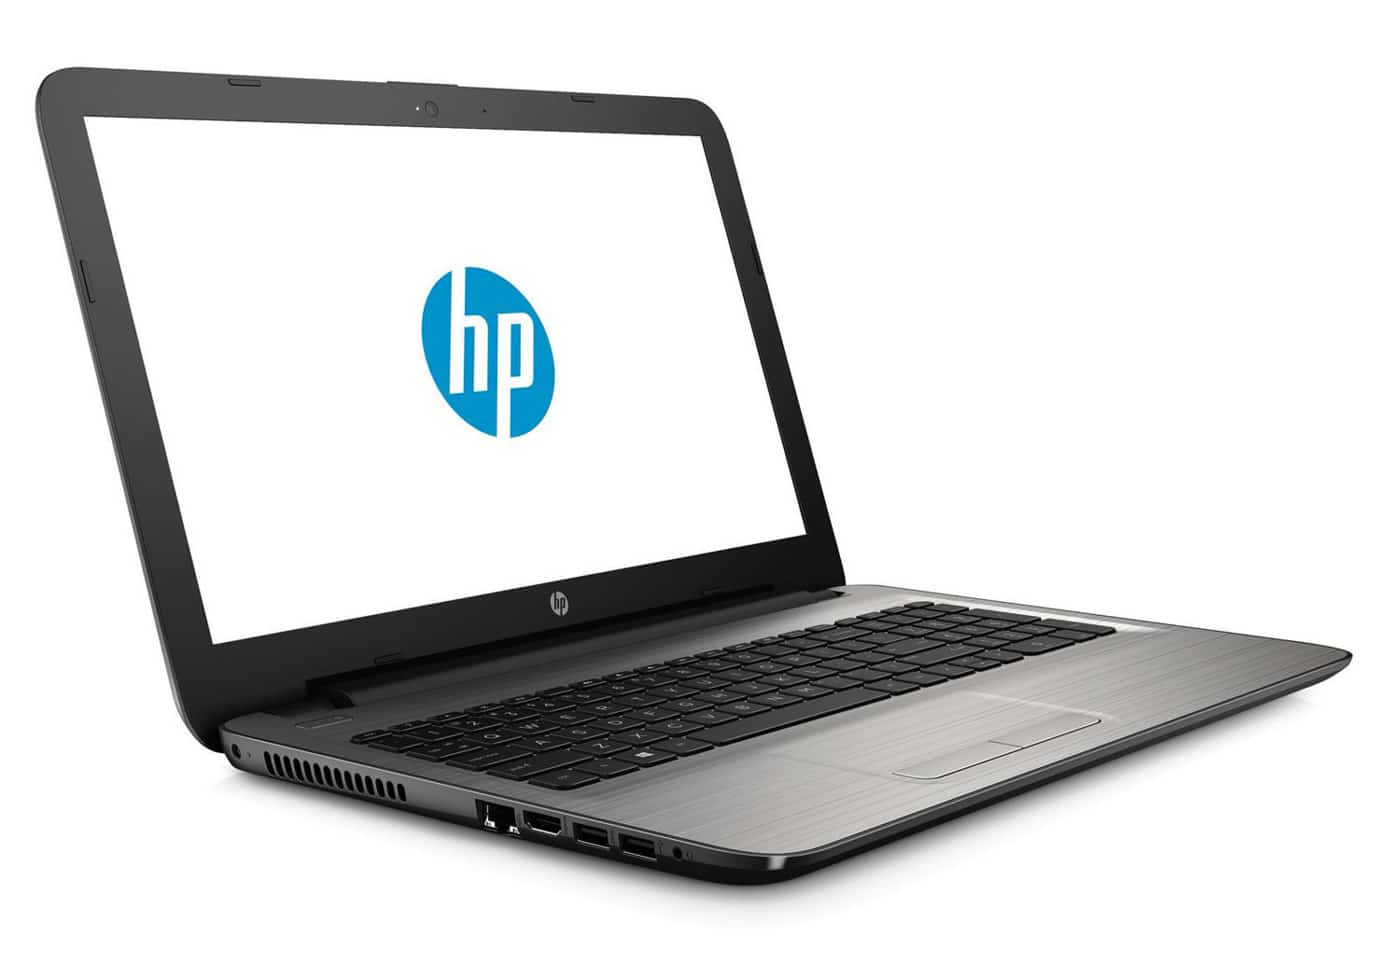 HP 15-ay130nf, PC portable 15 pouces multimédia i7 Kaby 8 Go Full HD R7 à 720€